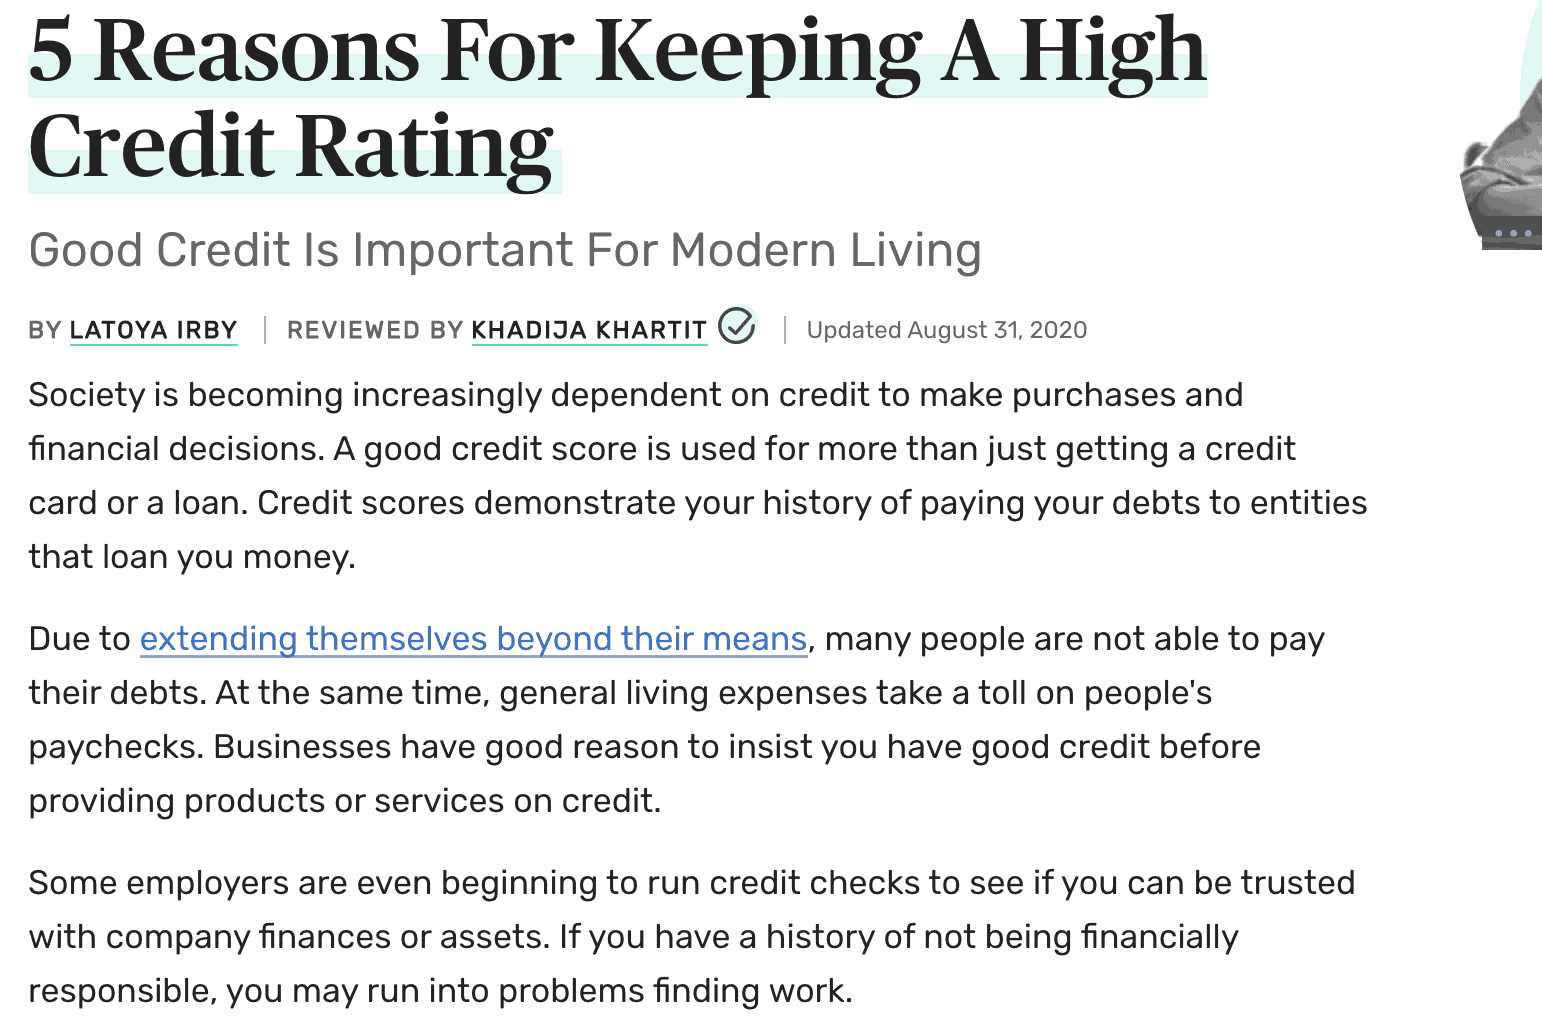 5 Reasons For Keeping A High Credit Rating